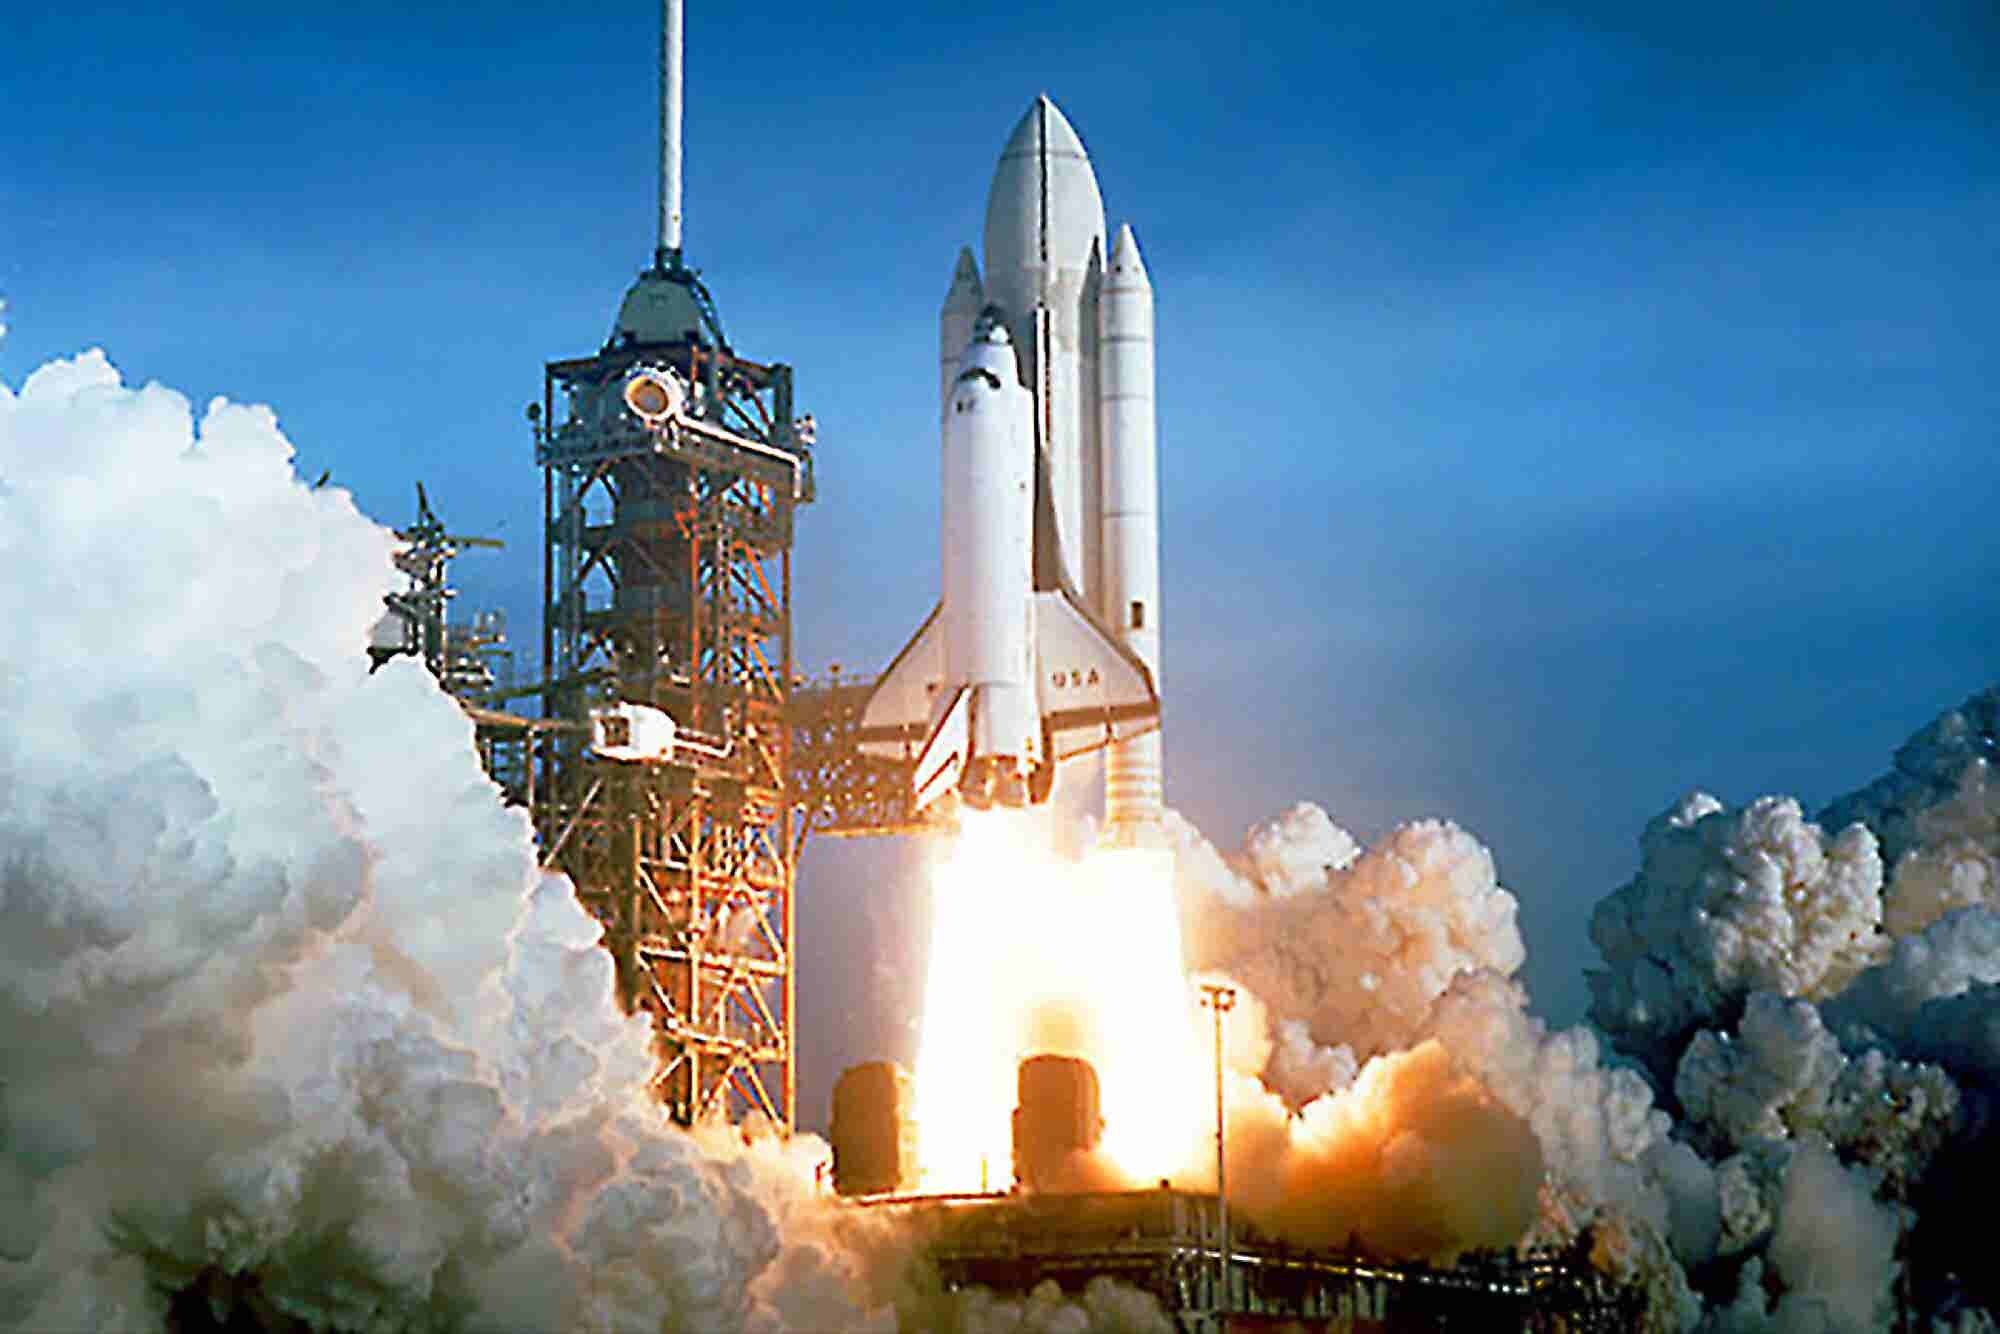 Are You Ready to Start Up? 3 Tips Before You Launch